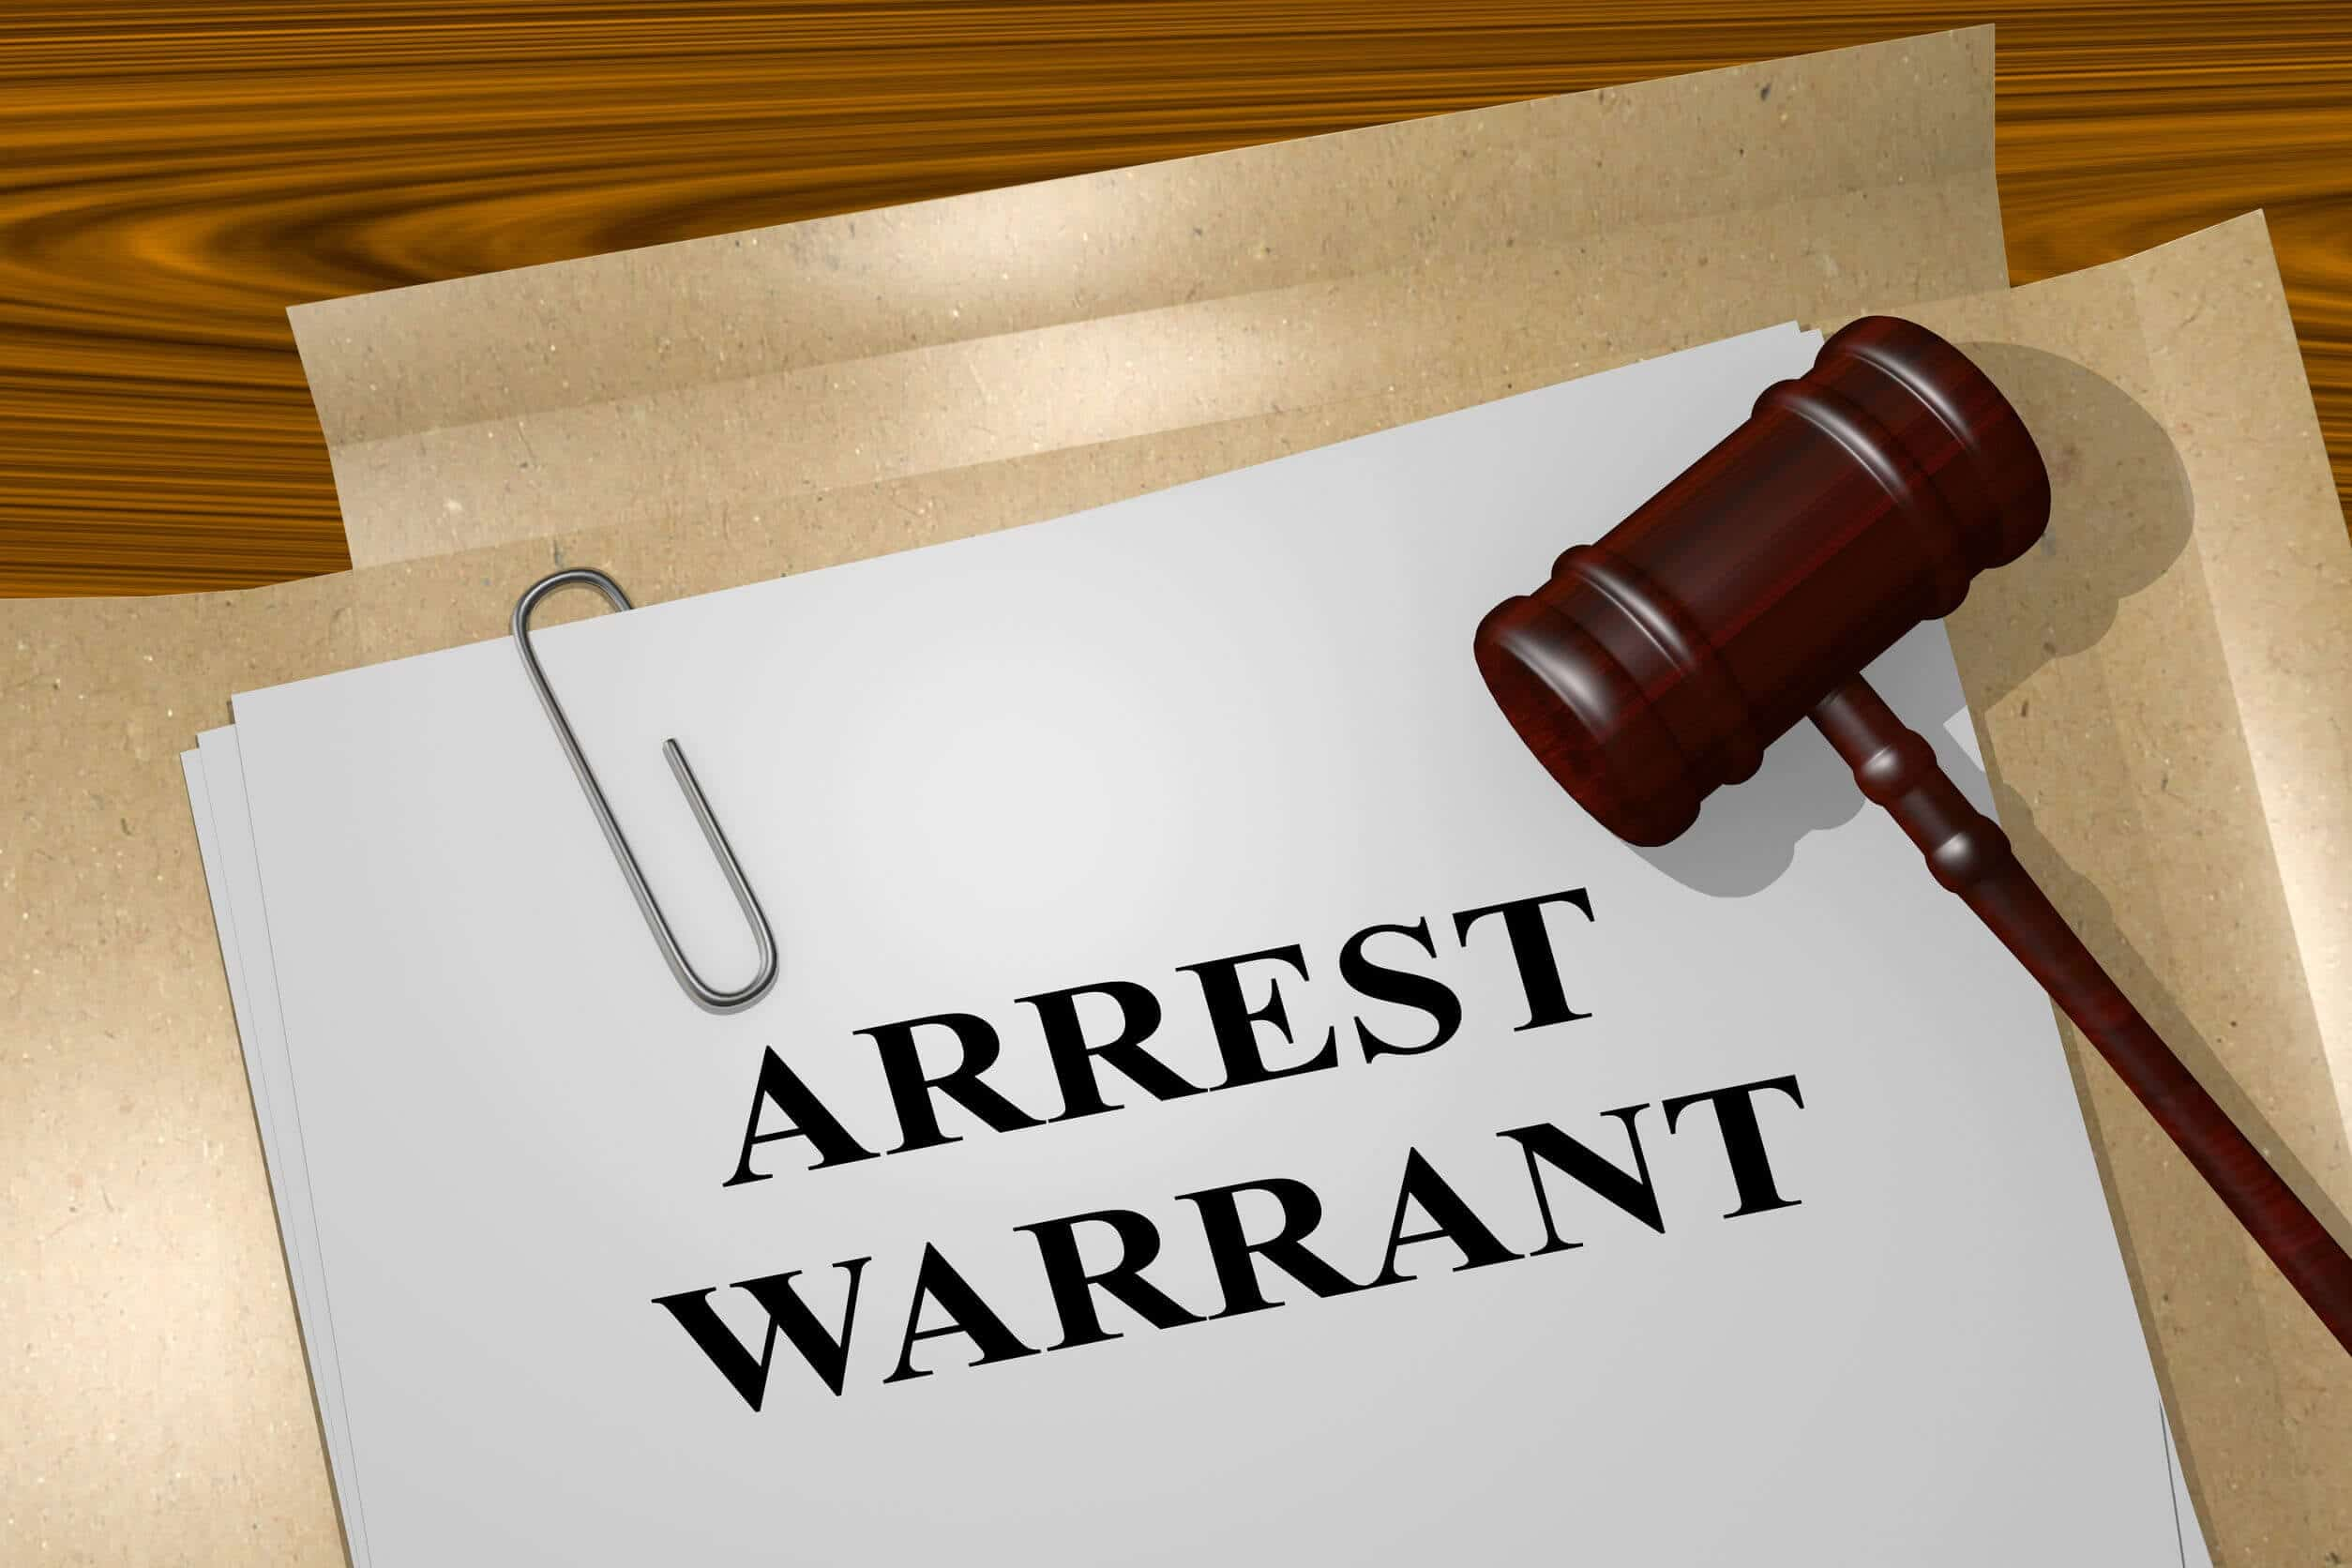 Can A Police Officer Make An Arrest Without A Warrant